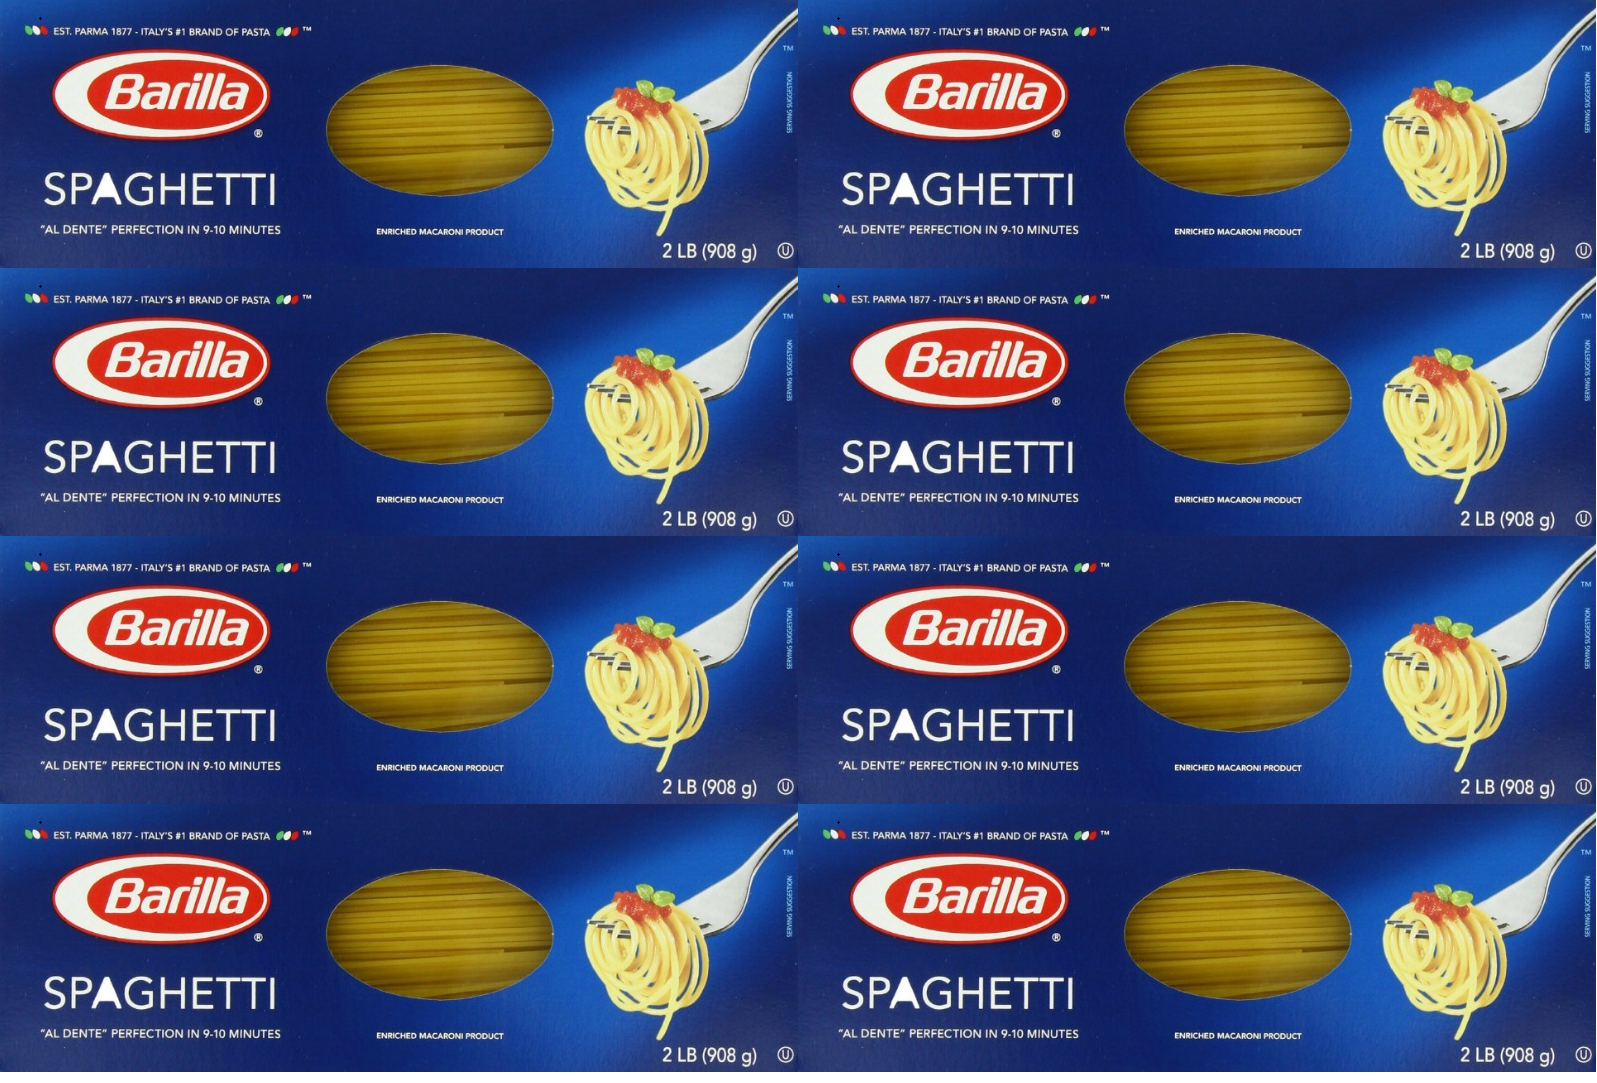 How did I not know that Barilla was anti-gay?